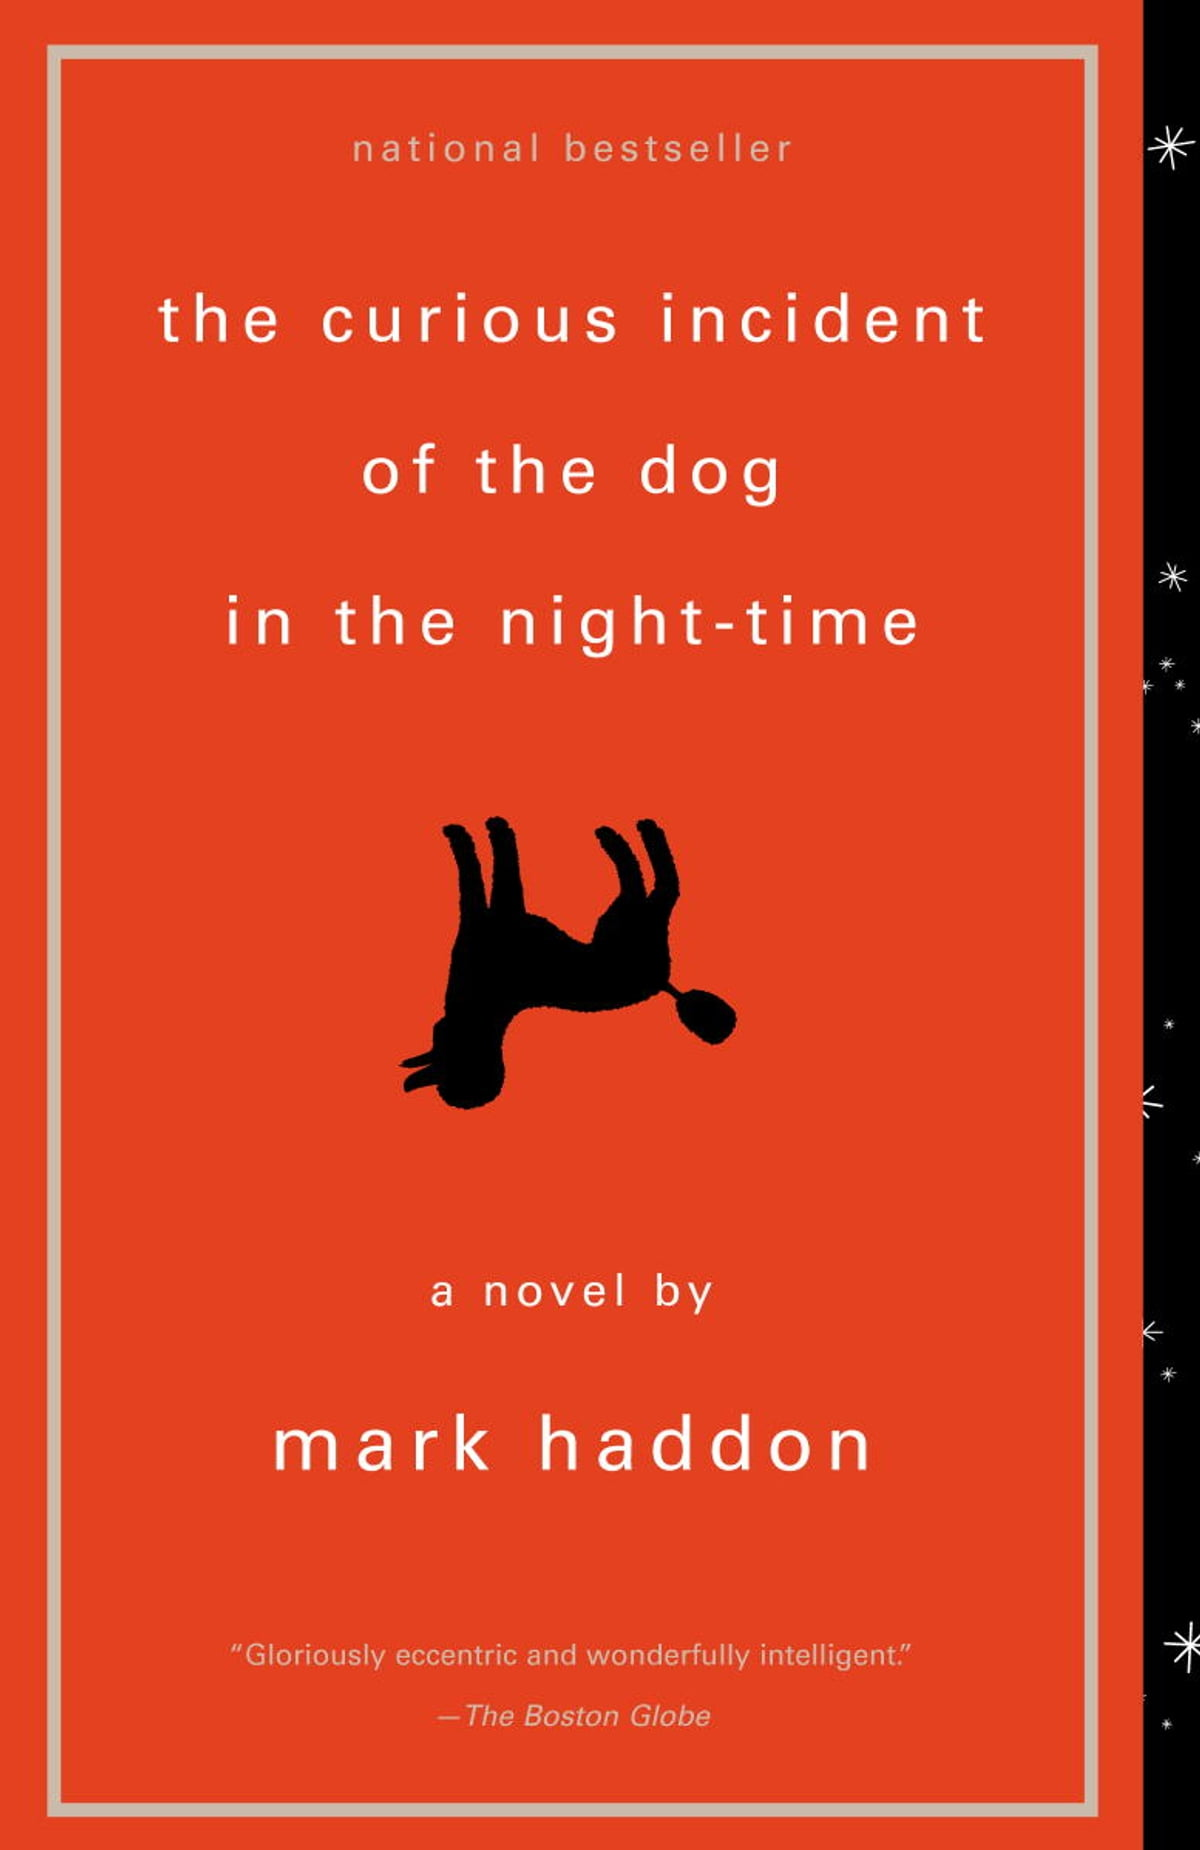 the curious incident of the dog in the night-time by mark haddon essay The curious incident of the dog in the night-time  mark haddon has said of the curious incident,  the curious incident of the dog in the night-time by mark haddon.